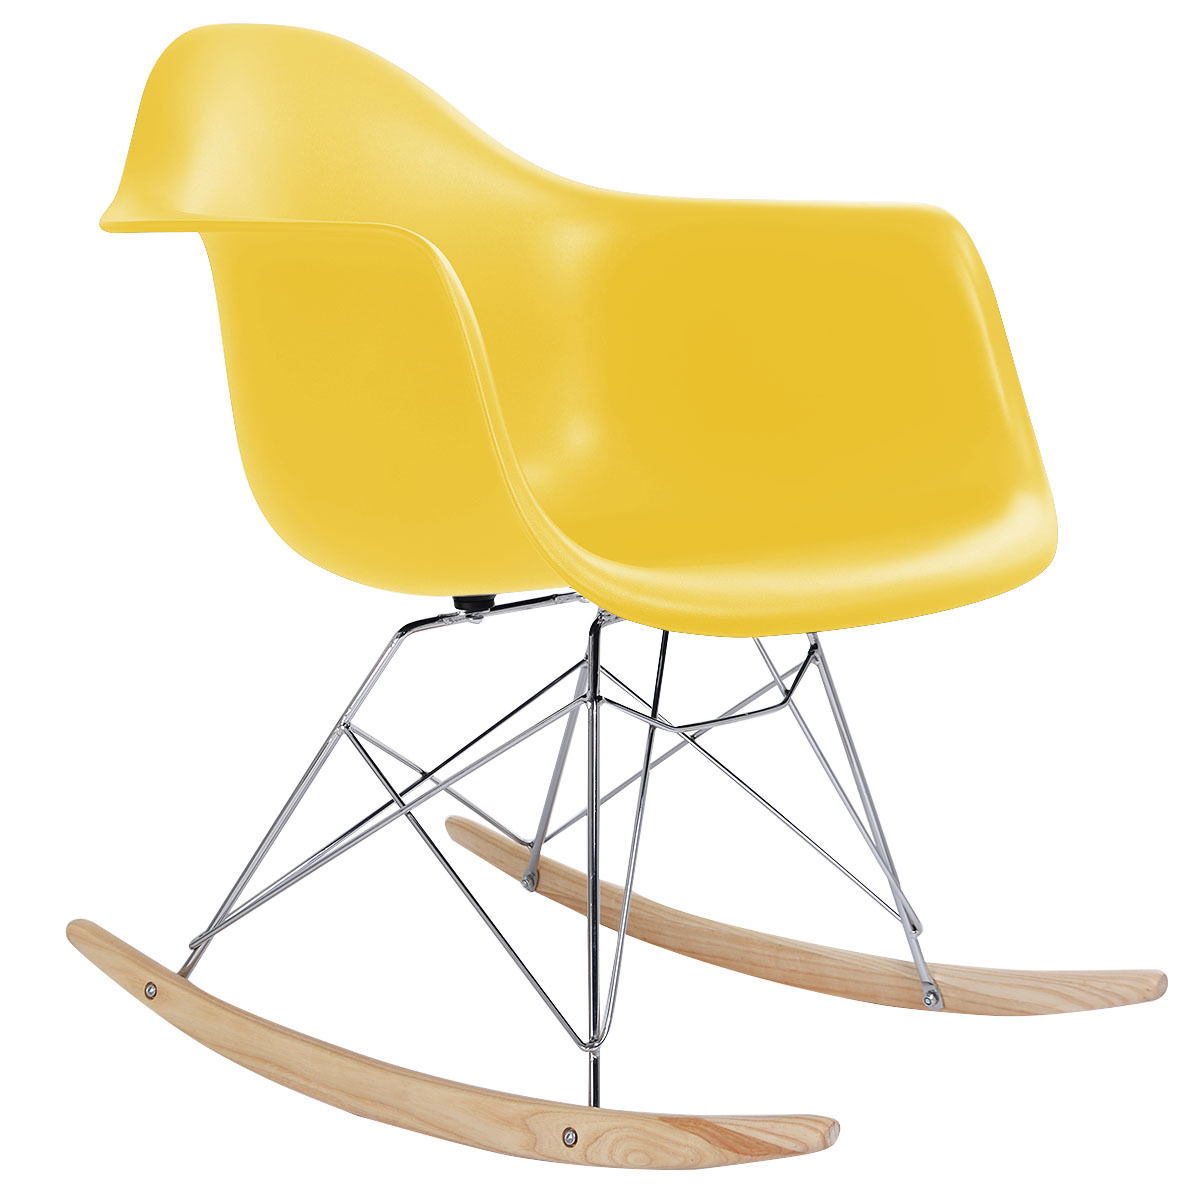 GHP Yellow Plastic Beech Wood Rocker Runner Mid-Century Look Shell Arm Rocking Chair